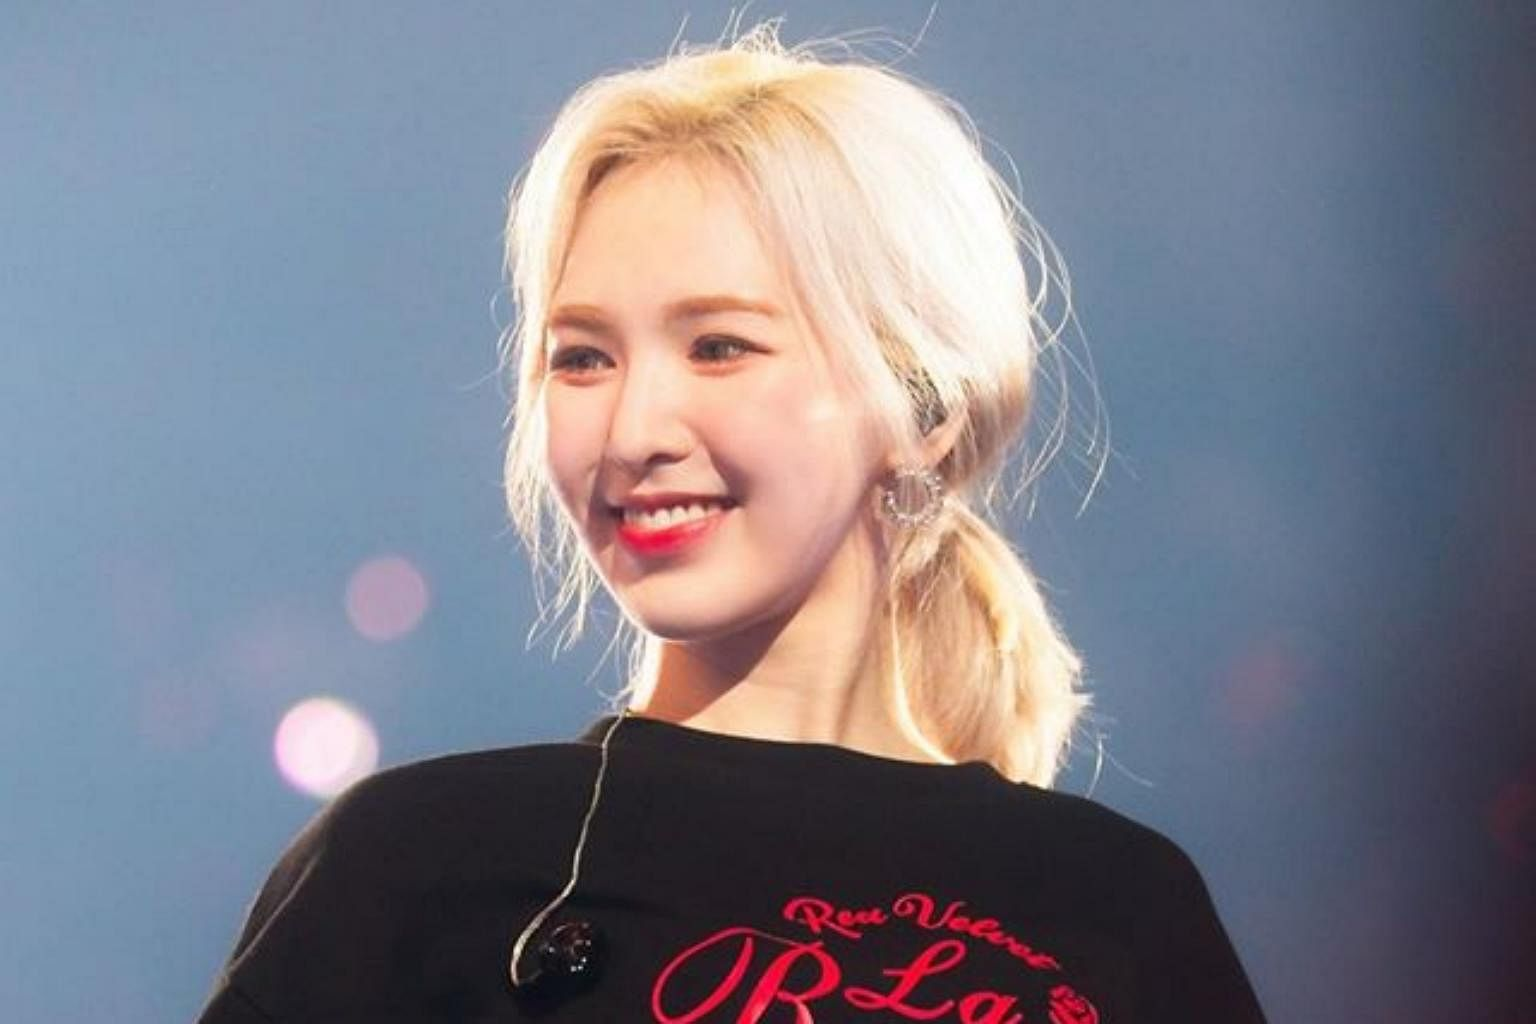 7 Wendy's habits that show her happiness